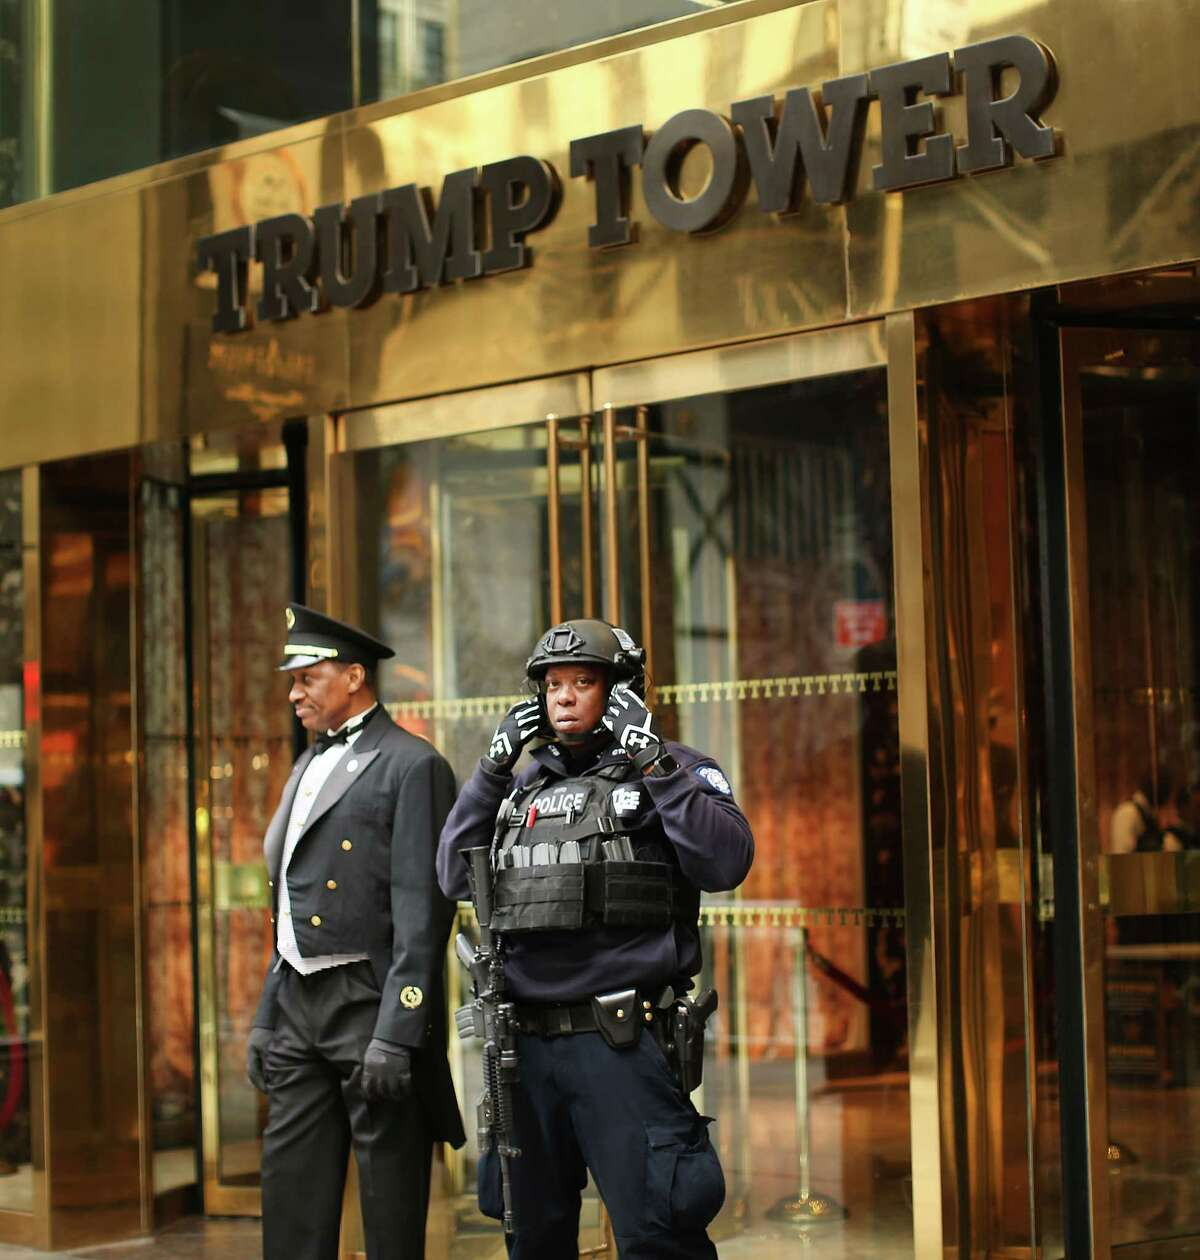 NEW YORK, NY - MARCH 20: A counter terrorism officer stands in front of Trump Tower in Manhattan on March 20, 2017 in New York City. Senate Minority Leader Chuck Schumer has been voicing criticism of President Donald Trump's proposed budget that could cut as much as $190 million from New York City efforts to fight terrorism. Following two major terrorist attacks and numerous foiled plots, New York City is considered the nation's prime target for terrorists. The NYPD has stated that it costs $500,000 a day to pay for the nearly 200 police officers in and around Trump Tower on Fifth Ave. (Photo by Spencer Platt/Getty Images) ORG XMIT: 700022535